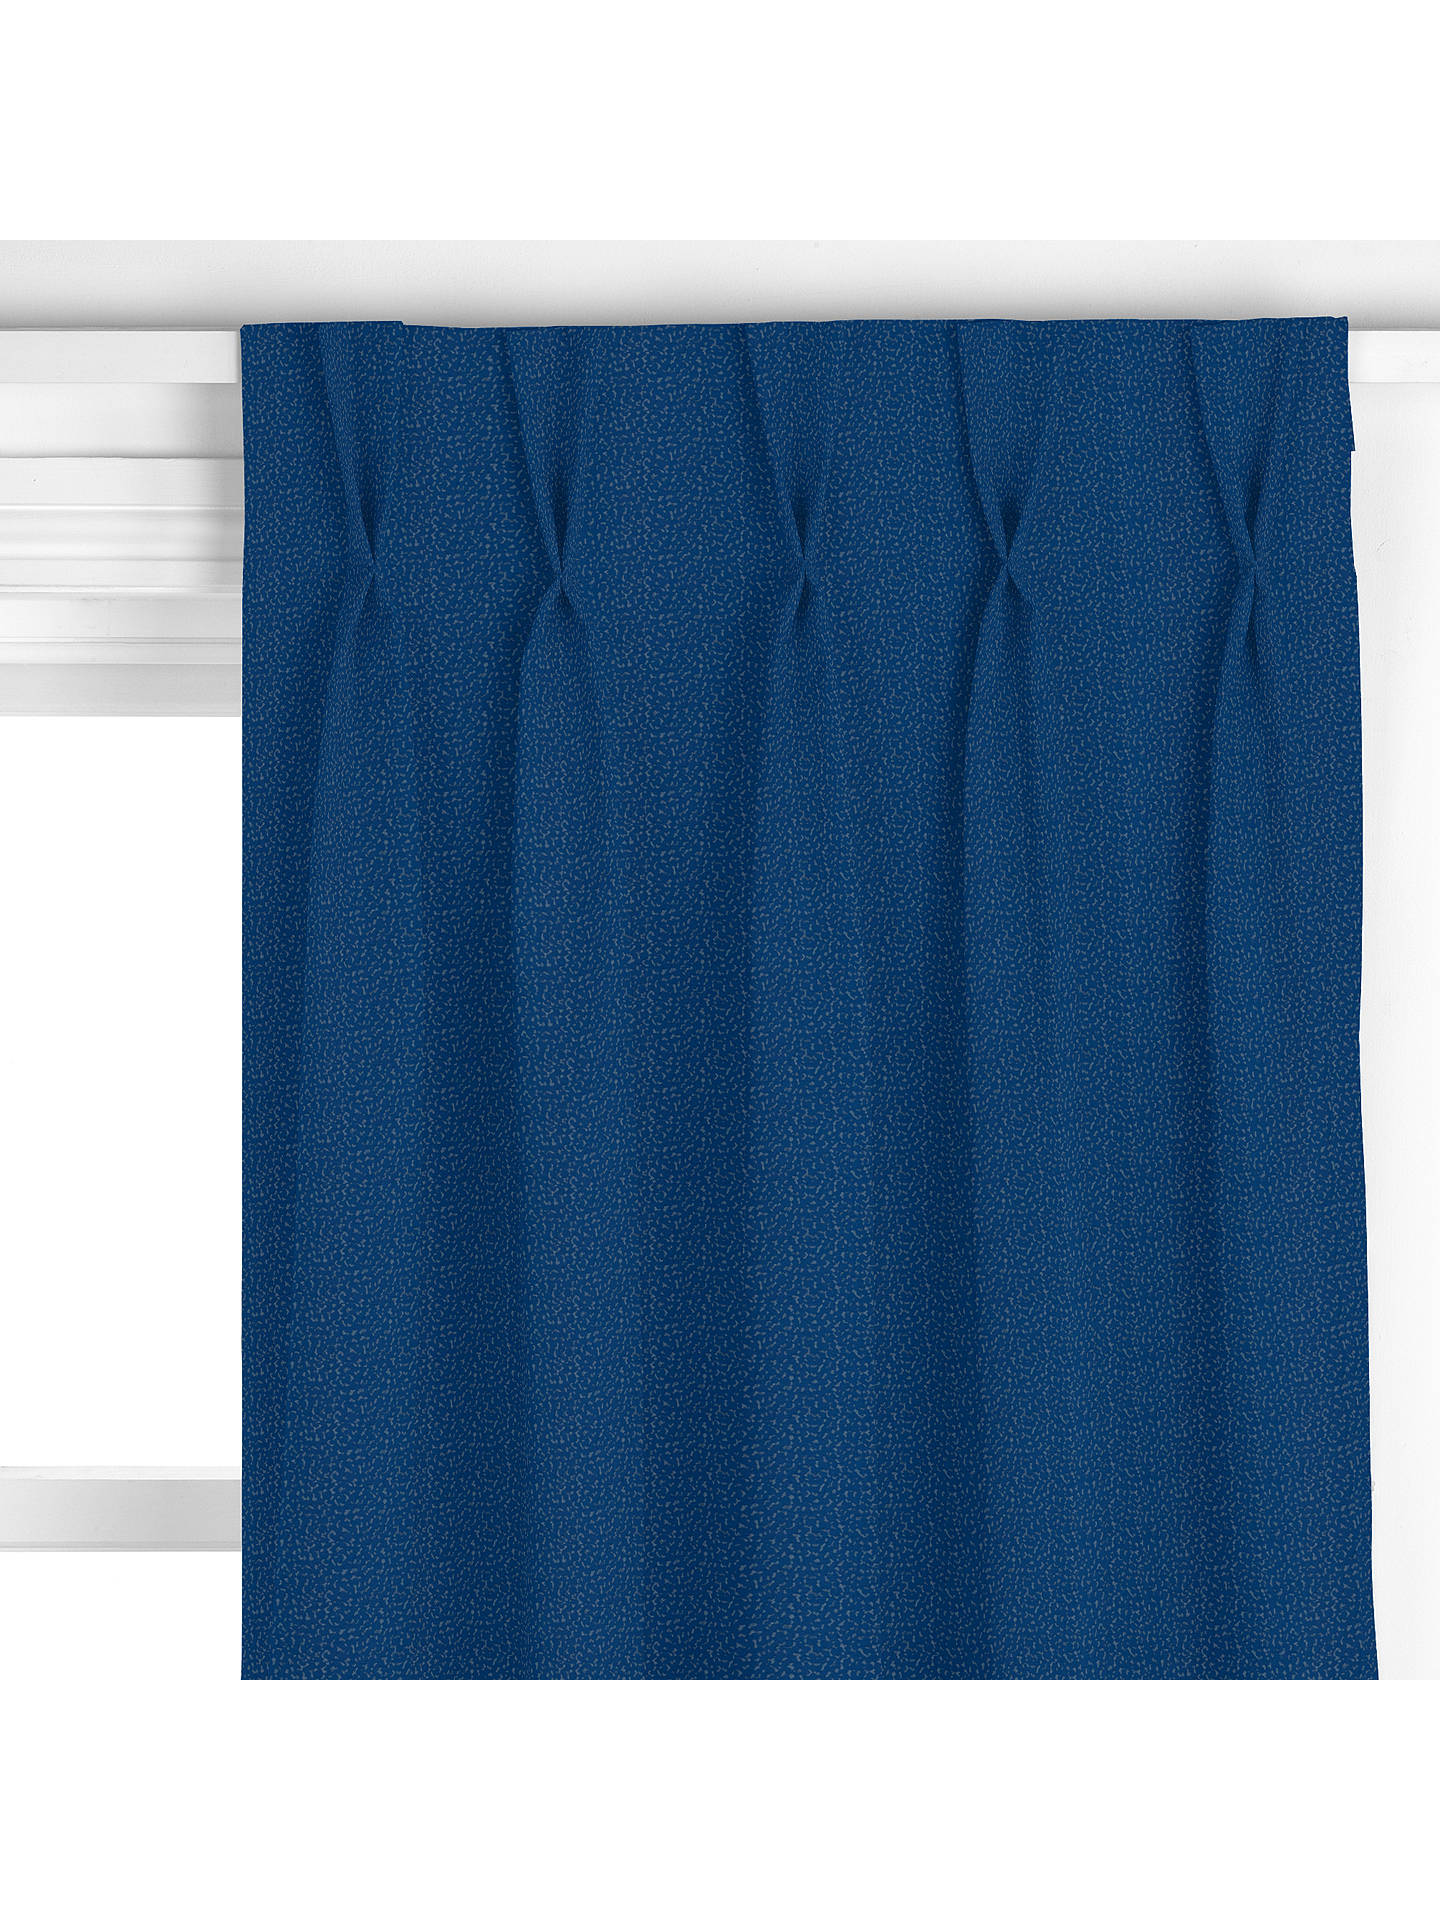 BuyAstar Curtain, Indigo Online at johnlewis.com